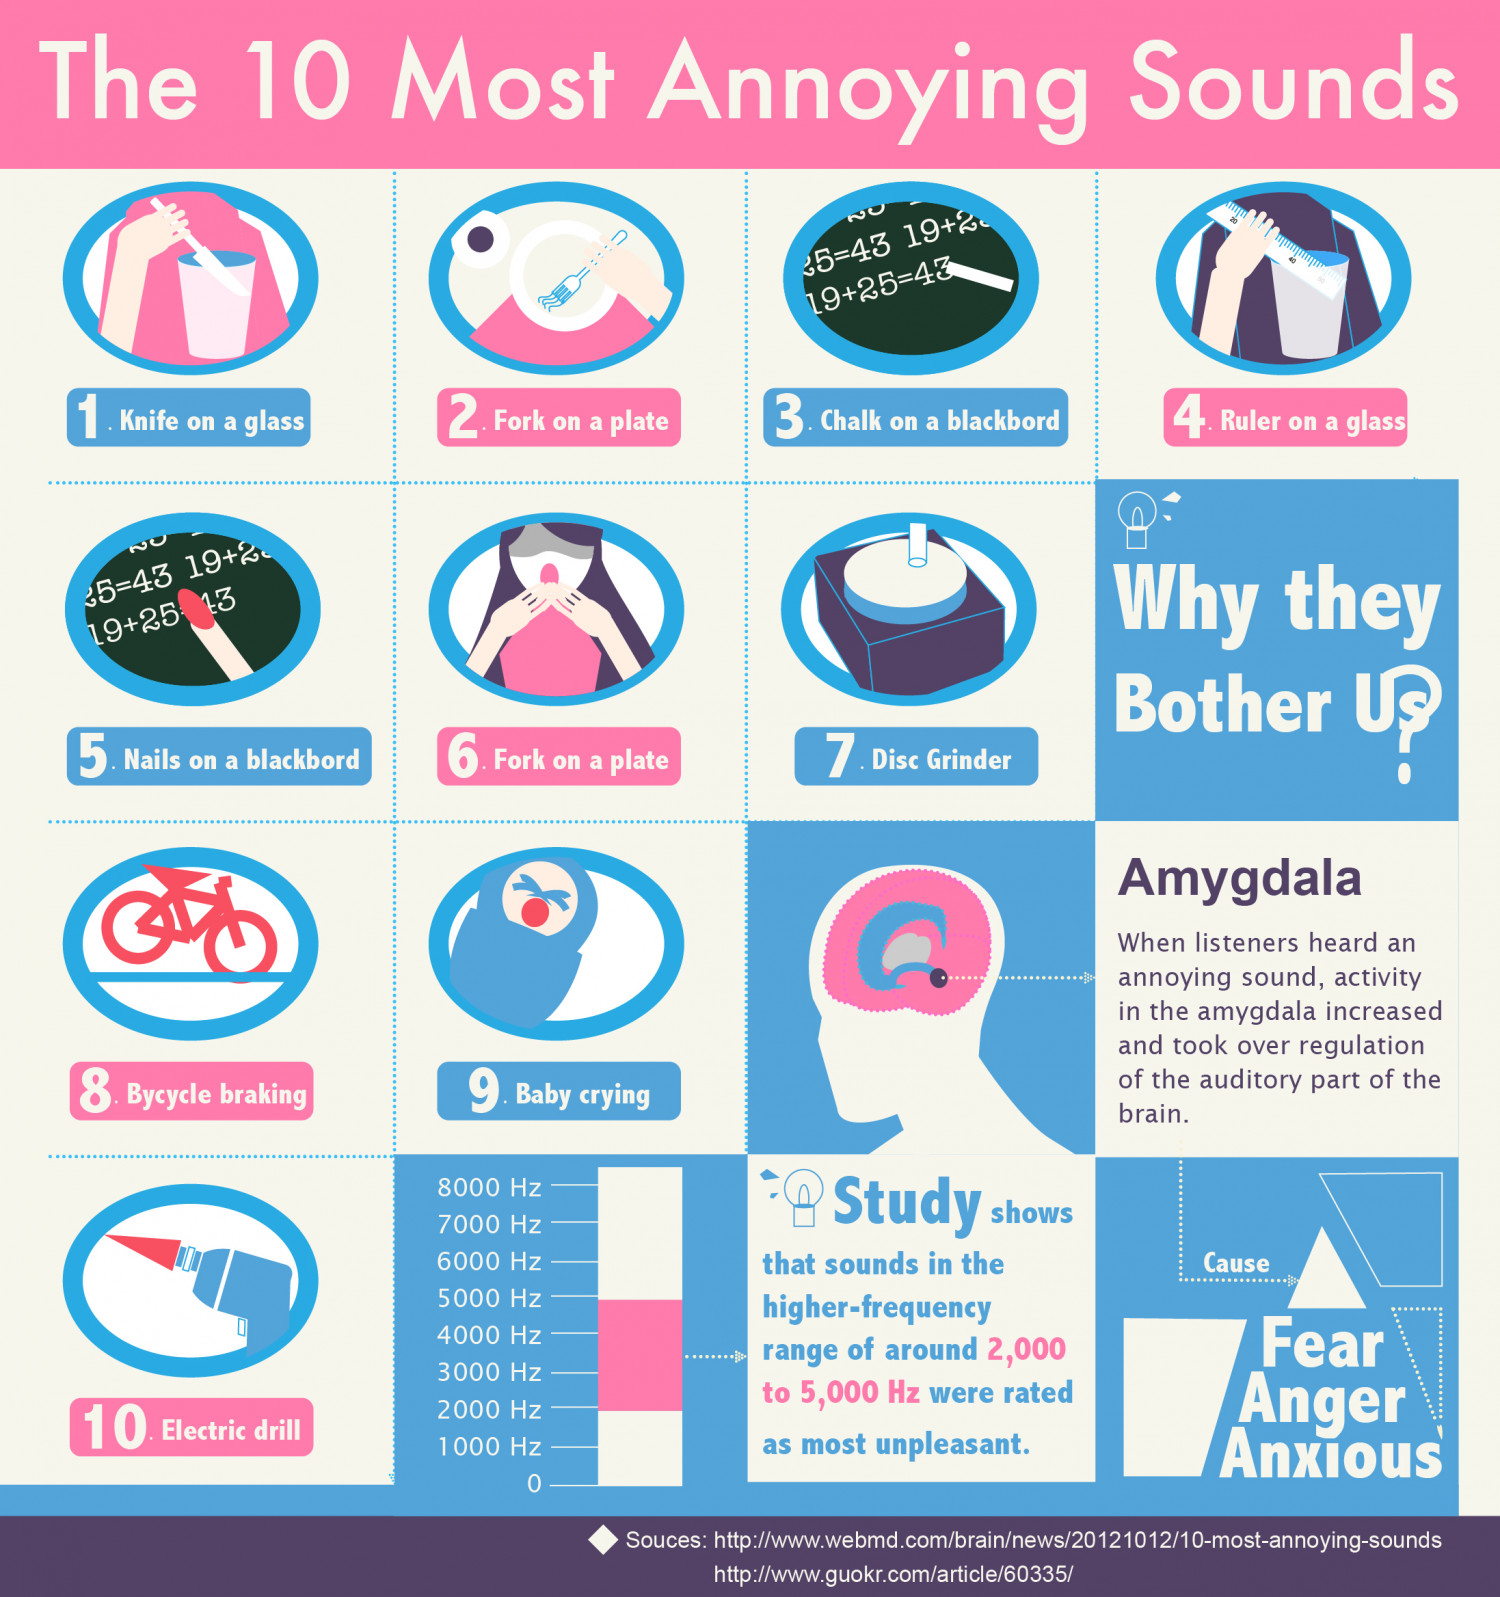 The 10 annoying sounds and why they bother us Infographic